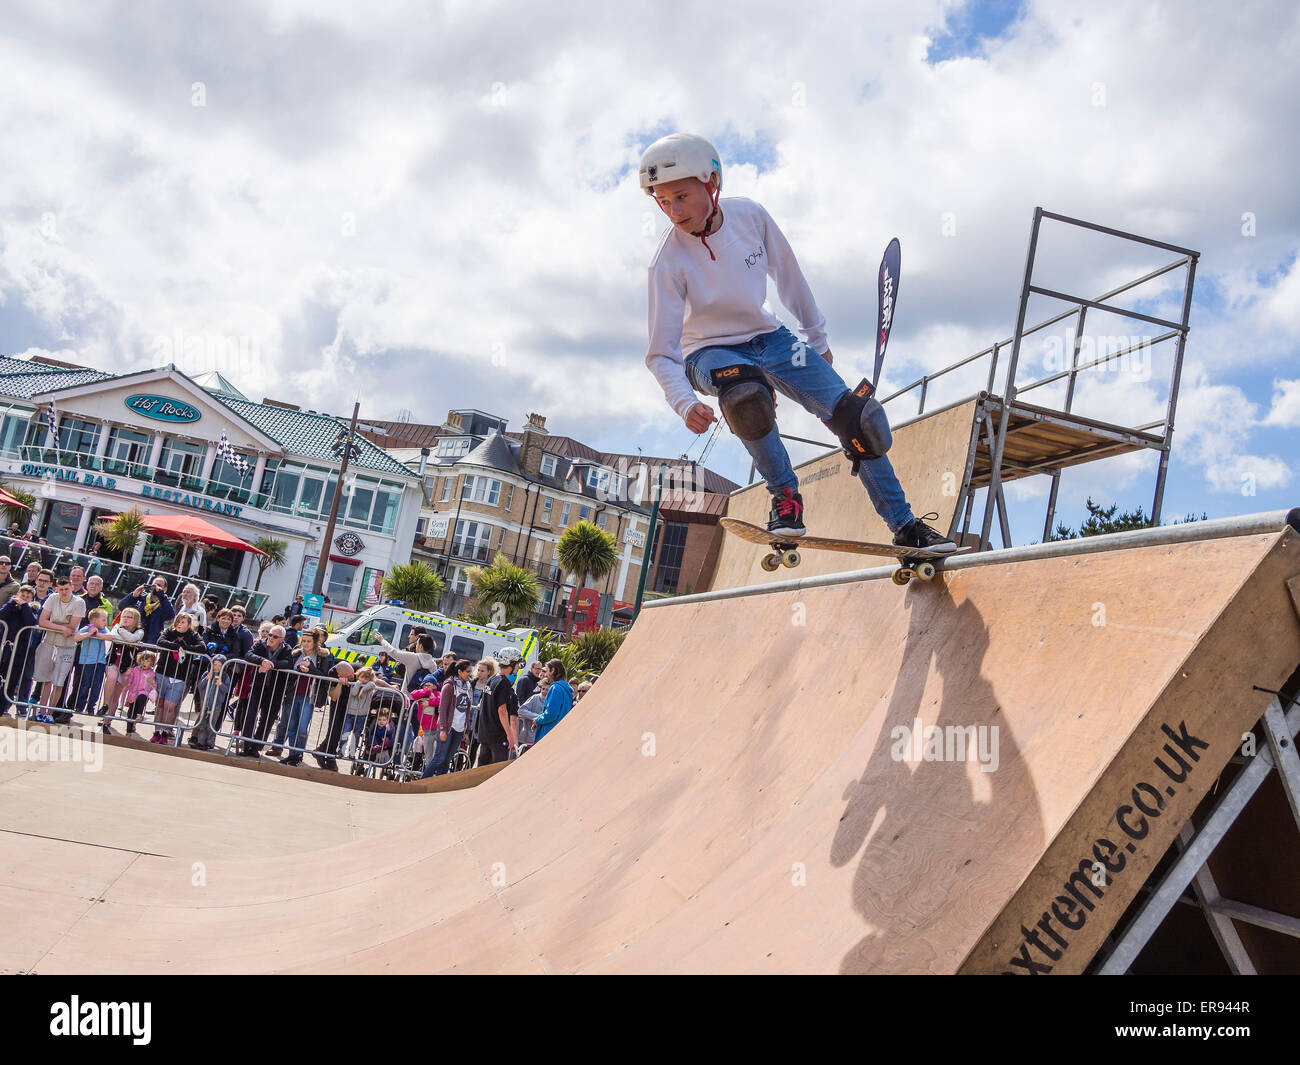 Skateboarder showing off his skills on a special purpose deck at the Wheels Festival in Bournemouth, Dorset, England, Stock Photo